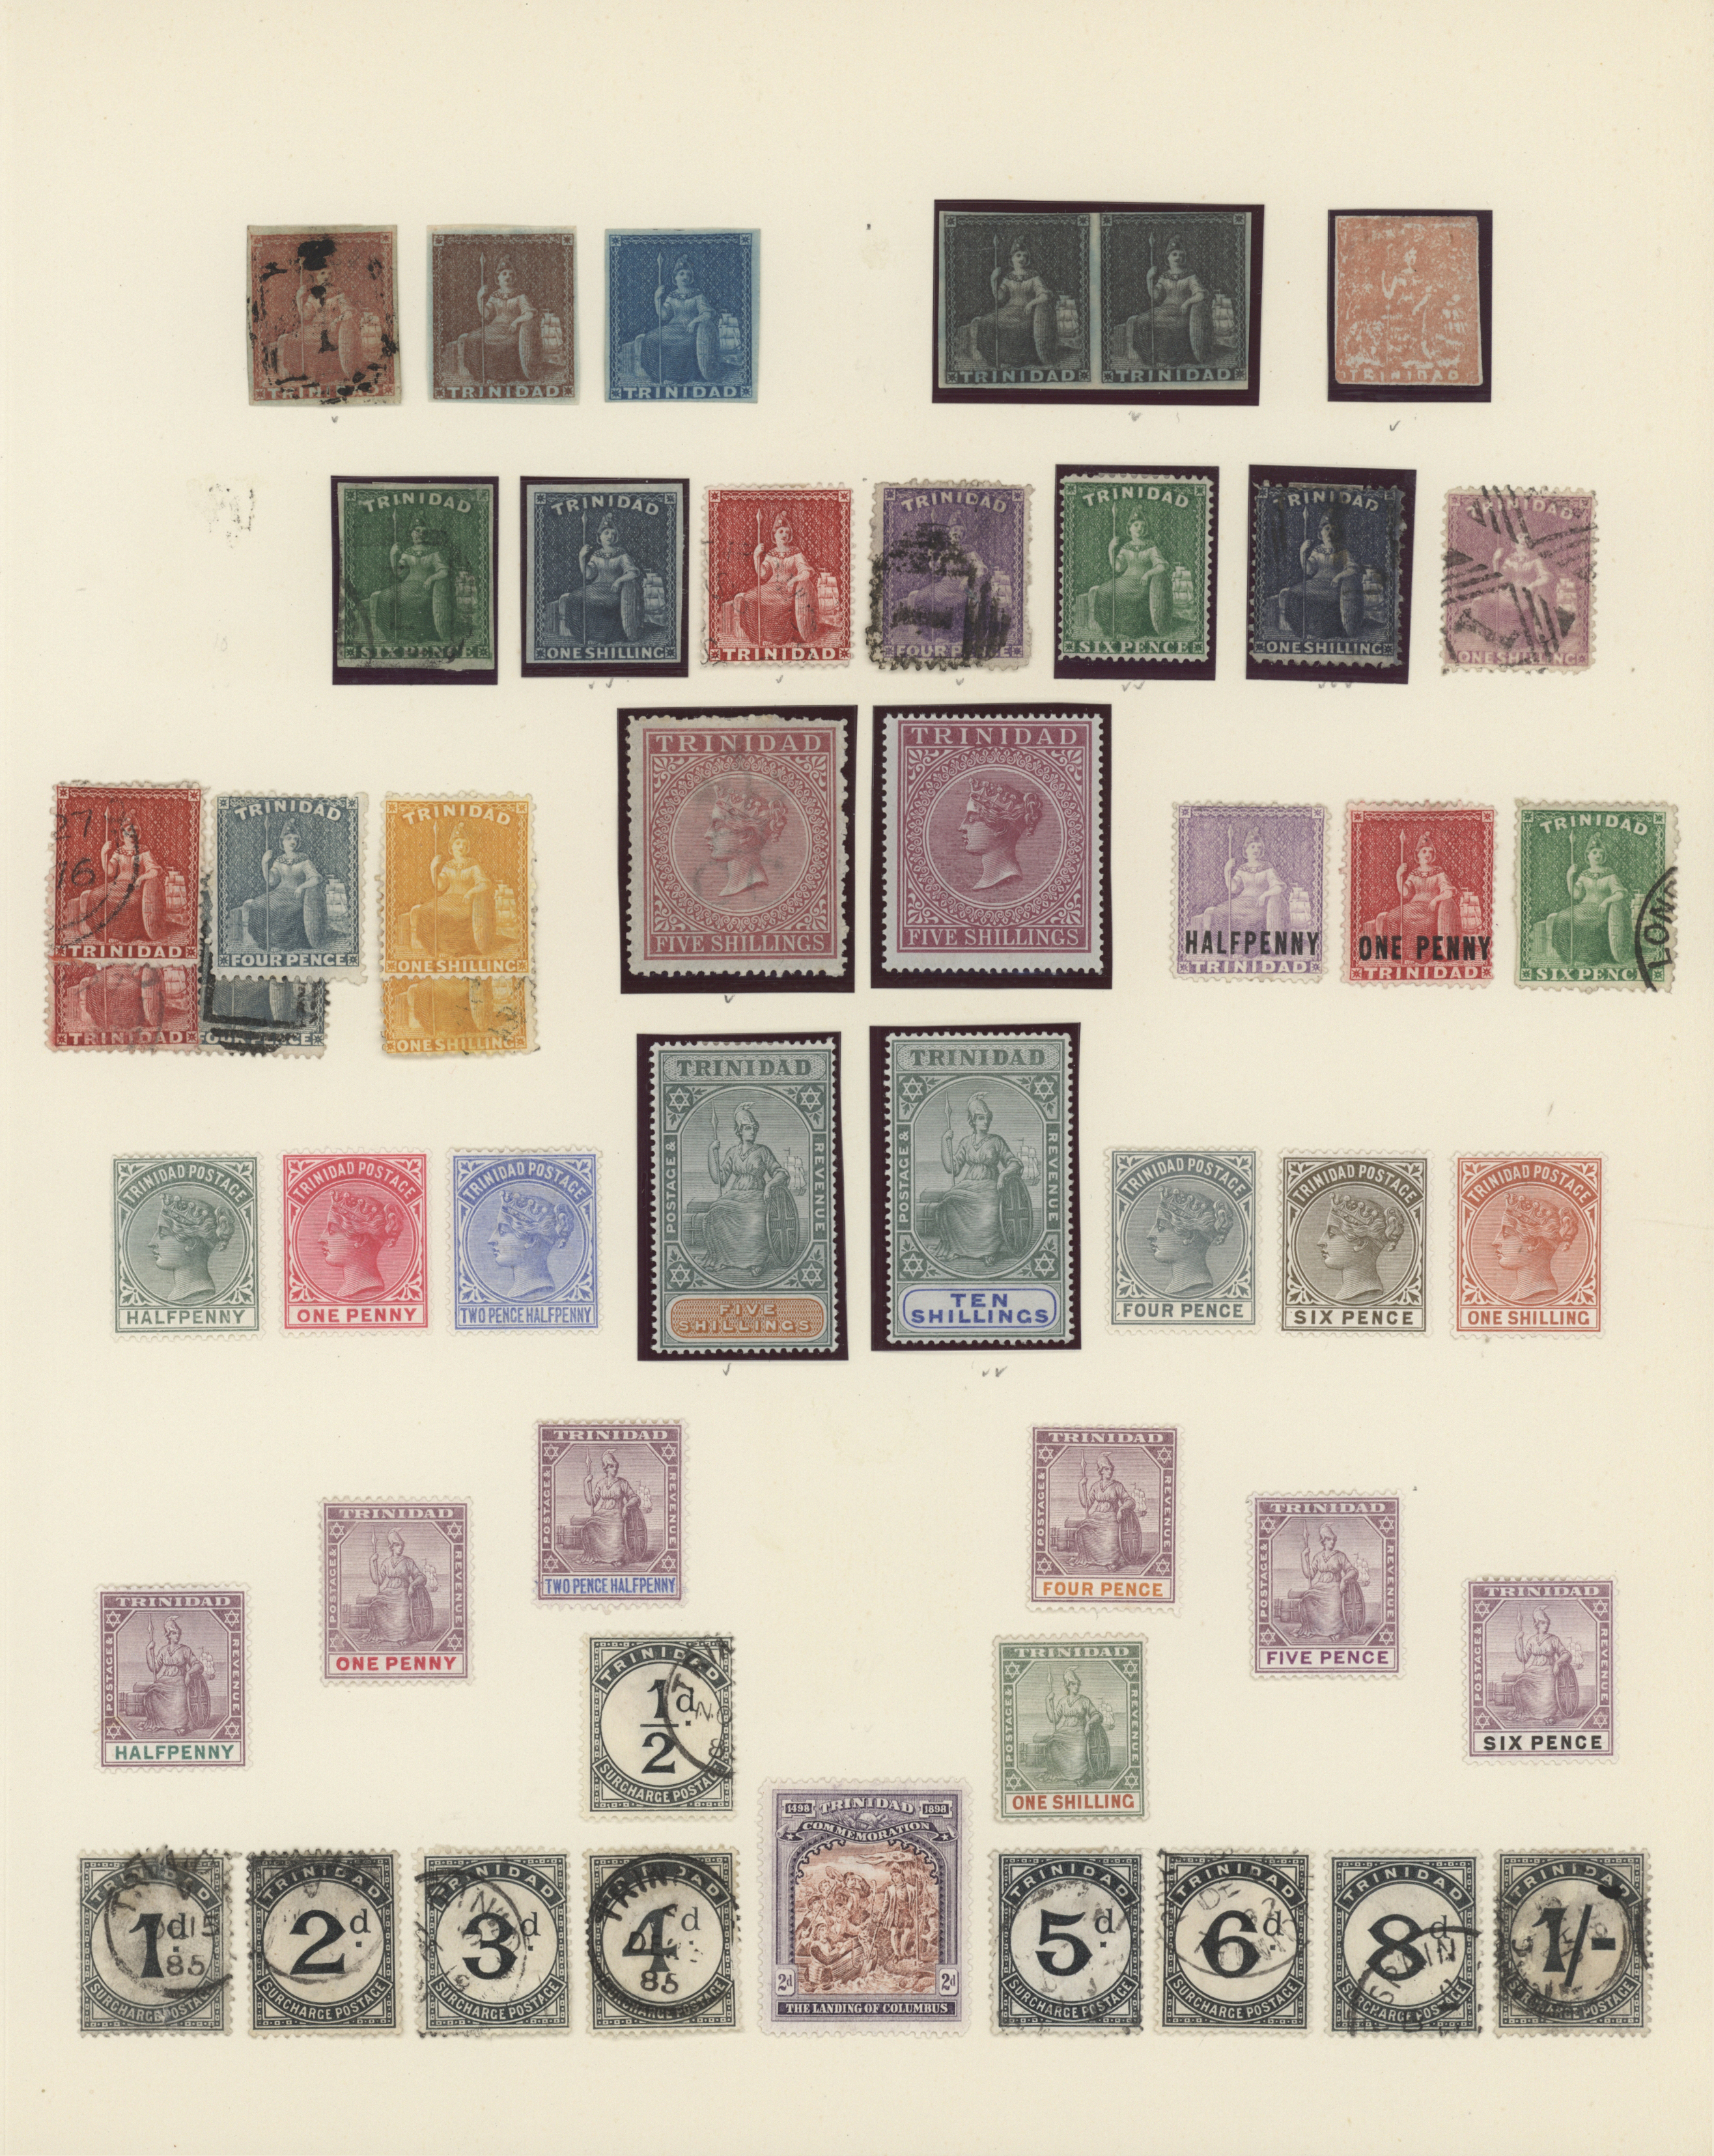 Lot 34624 - trinidad und tobago  -  Auktionshaus Christoph Gärtner GmbH & Co. KG Collections Germany,  Collections Supplement, Surprise boxes #39 Day 7